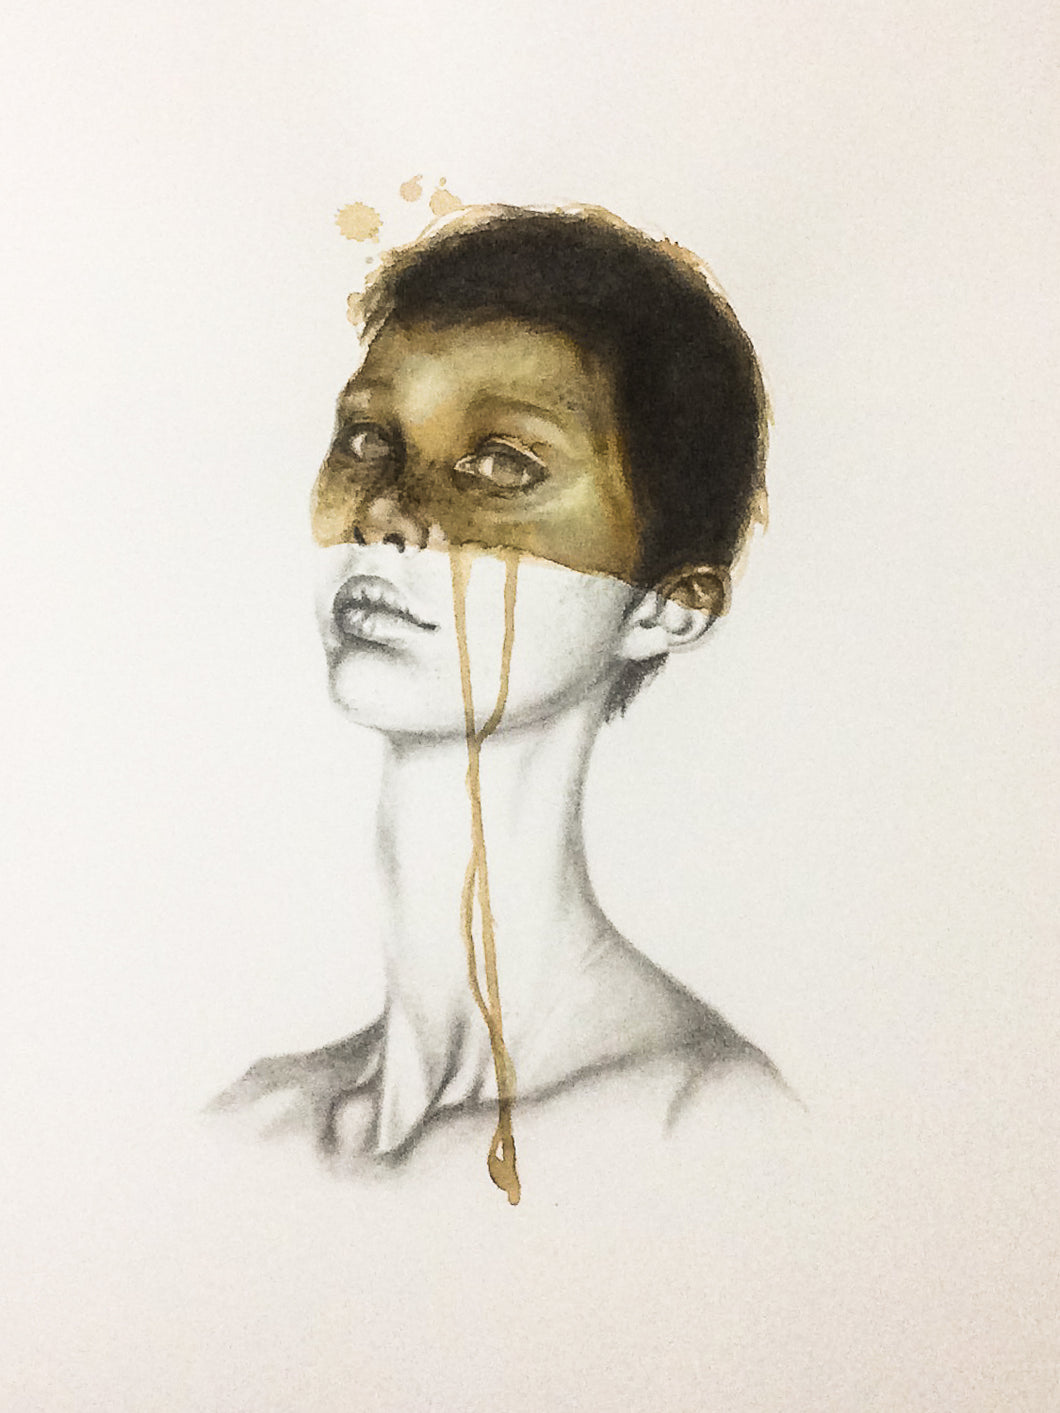 Jeff Mendes - THE SIGHT OF THE GOLD THAT FLOWS ABOVE STAINED SKIN